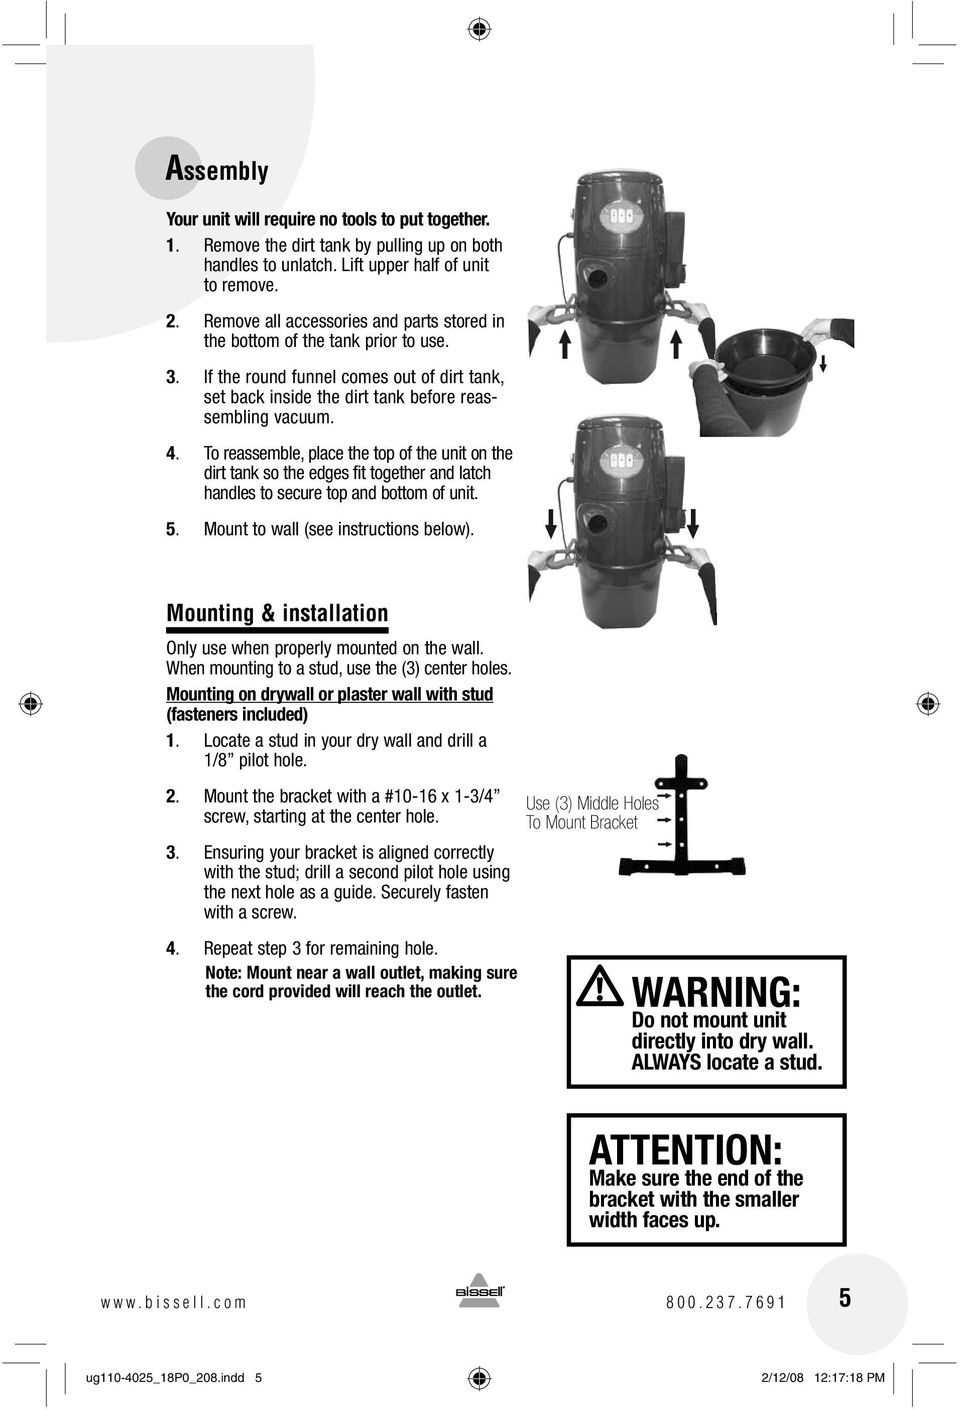 To reassemble, place the top of the unit on the dirt tank so the edges fit together and latch handles to secure top and bottom of unit. 5. Mount to wall (see instructions below).